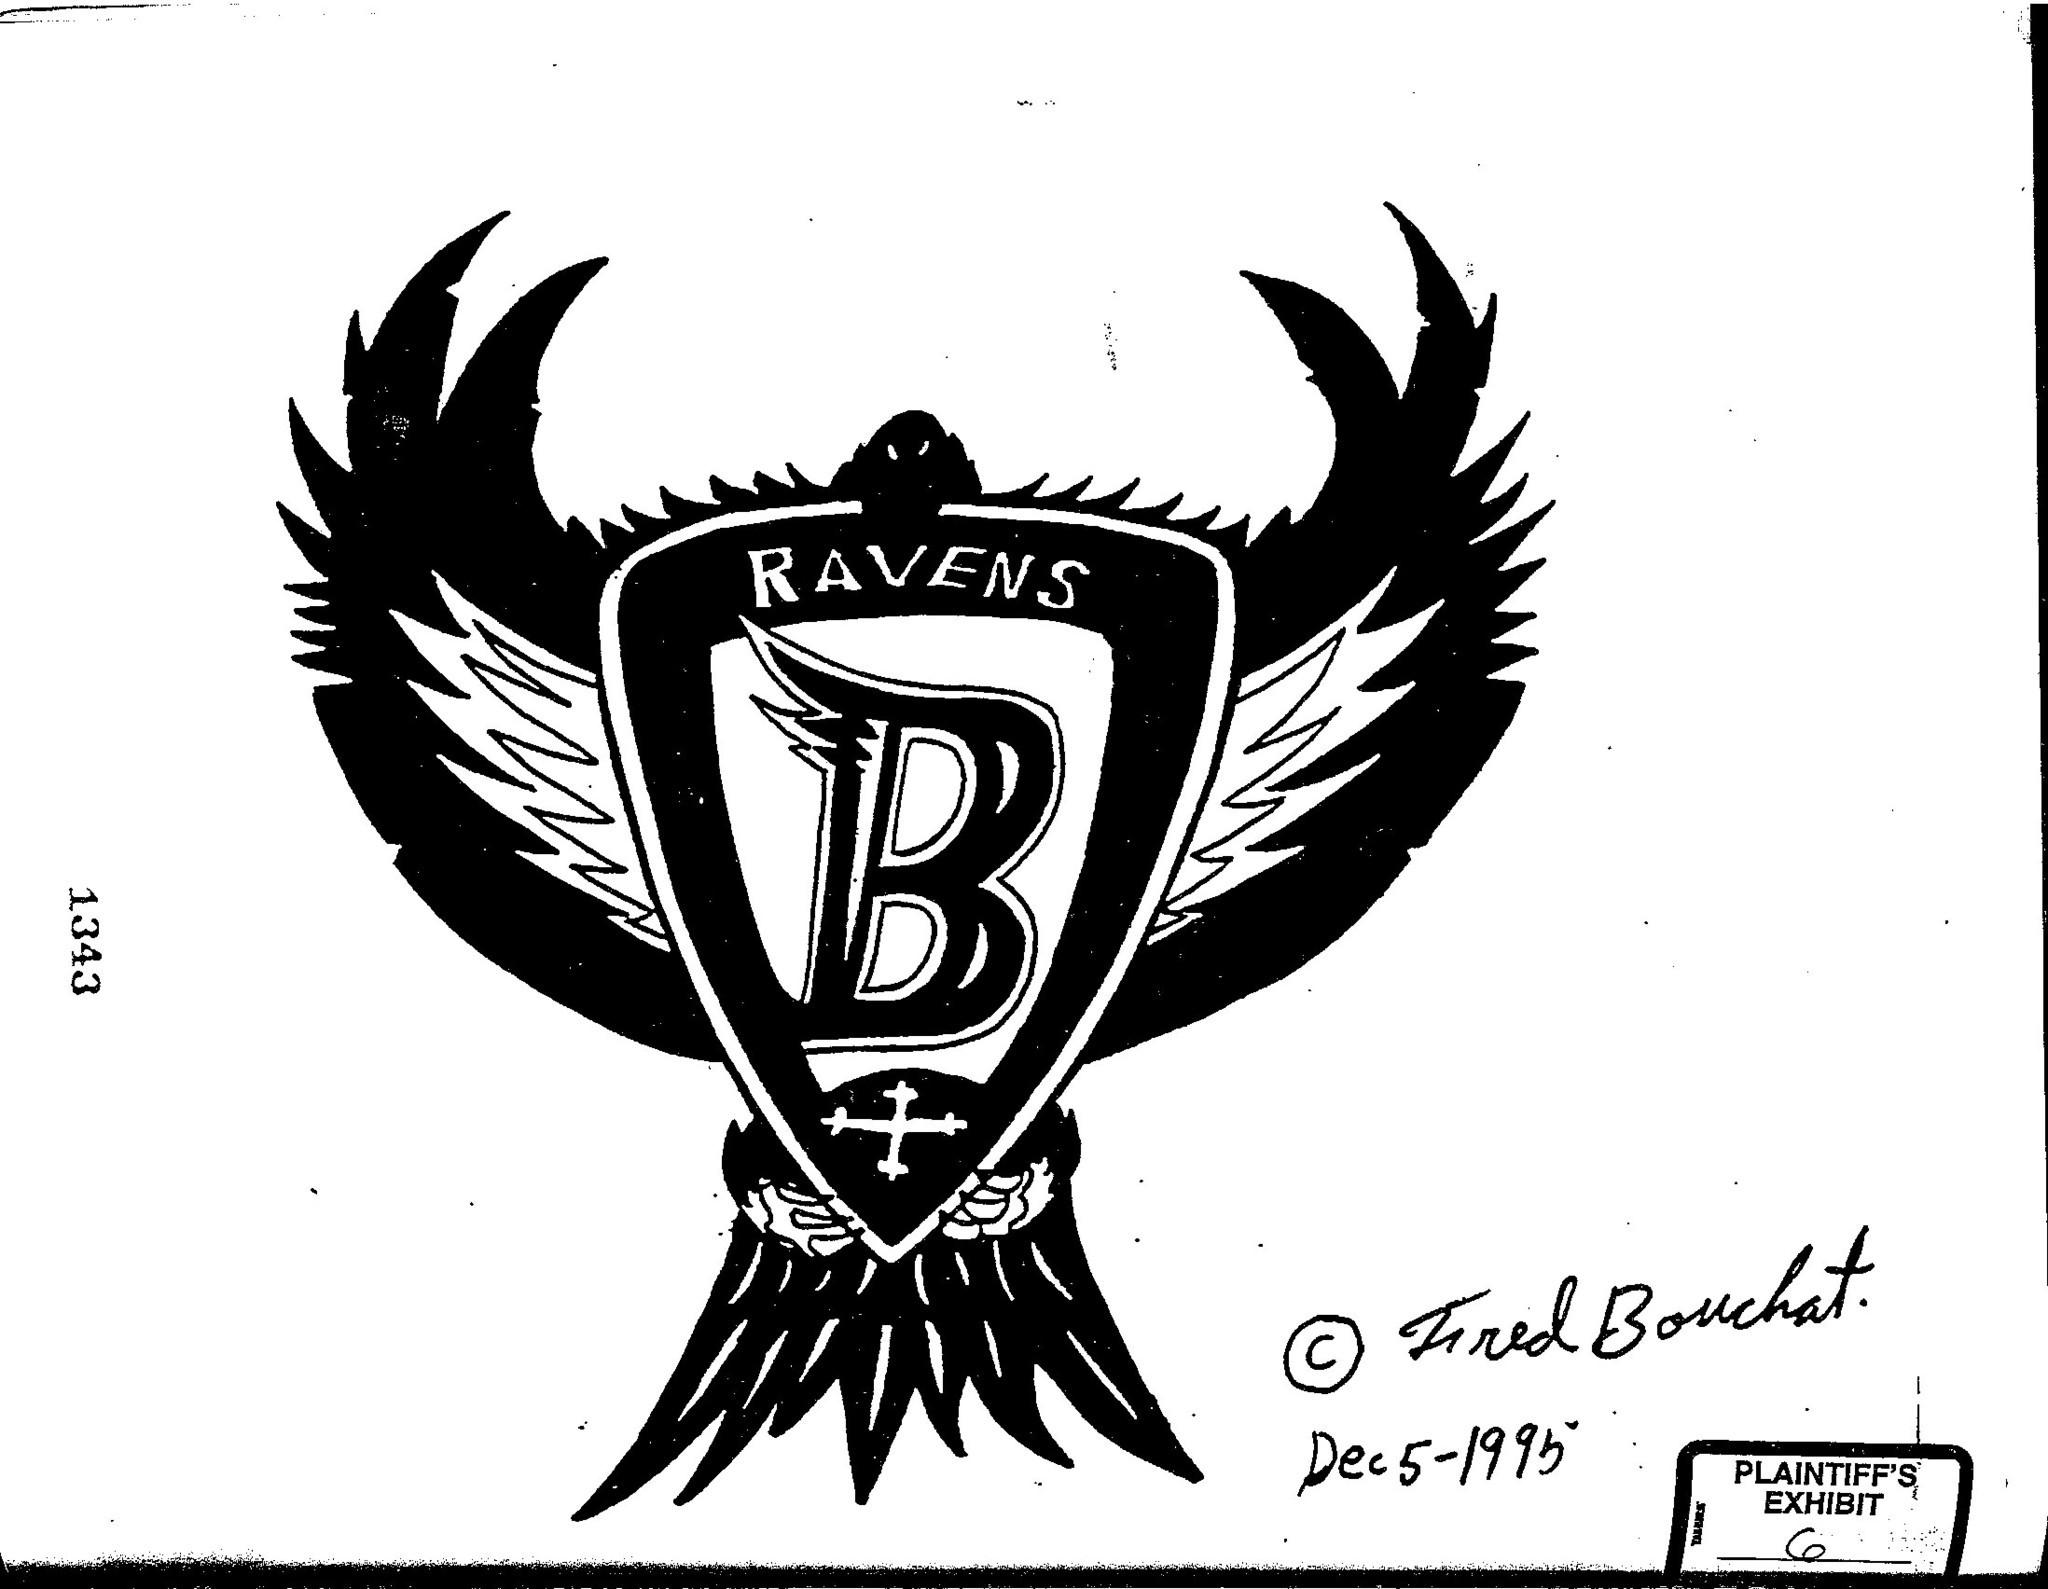 nfl and ravens can use old logo in historical videos exhibits Suit Tshirt nfl and ravens can use old logo in historical videos exhibits baltimore sun